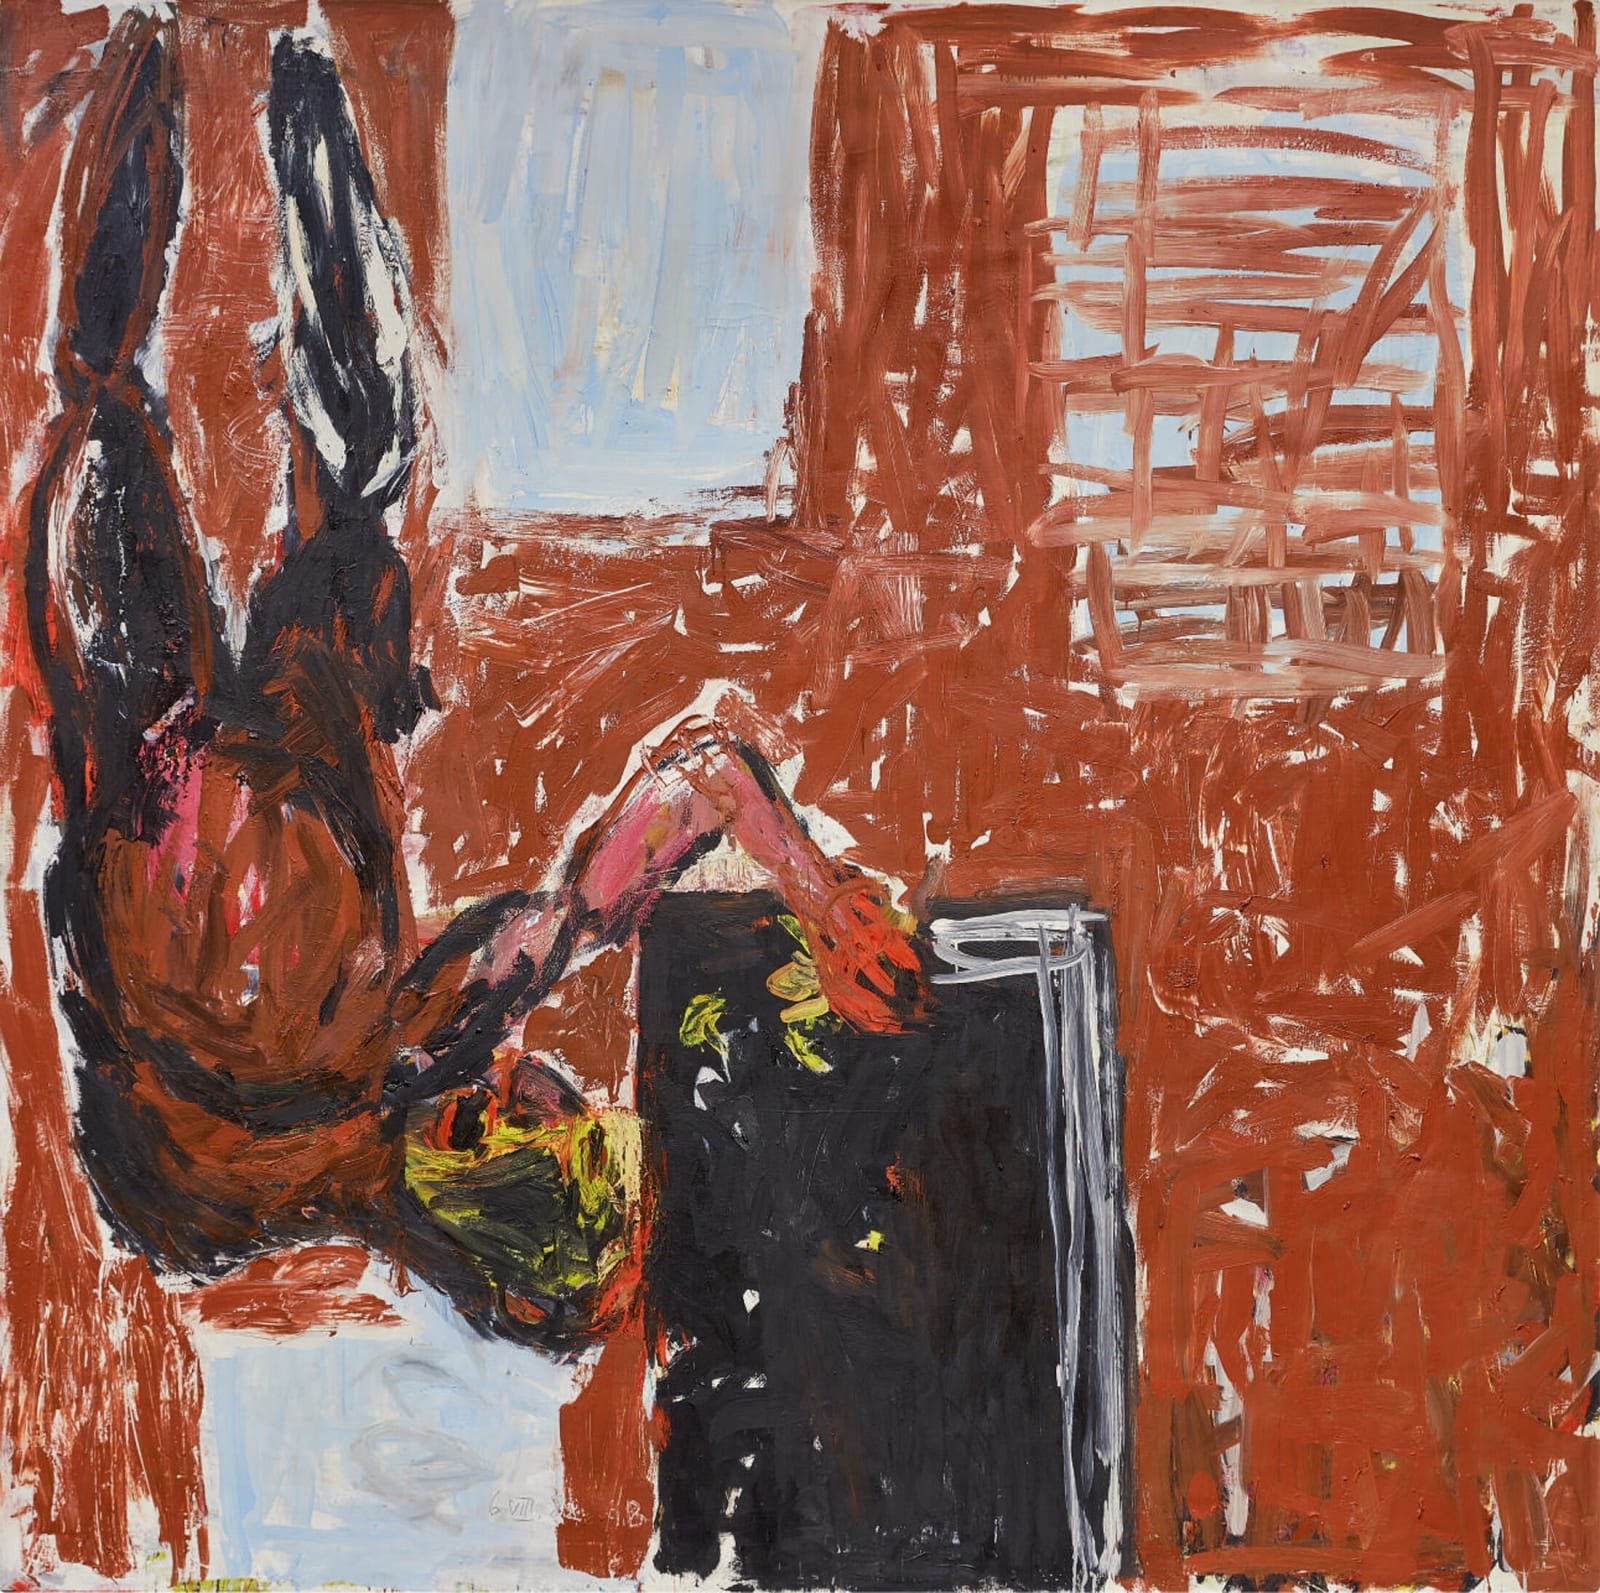 Georg Baselitz Stars in the Window (Sterne im Fenster) 1982 oil on canvas 98 3/8 x 98 3/8 inches 249.9 x 249.9 cm